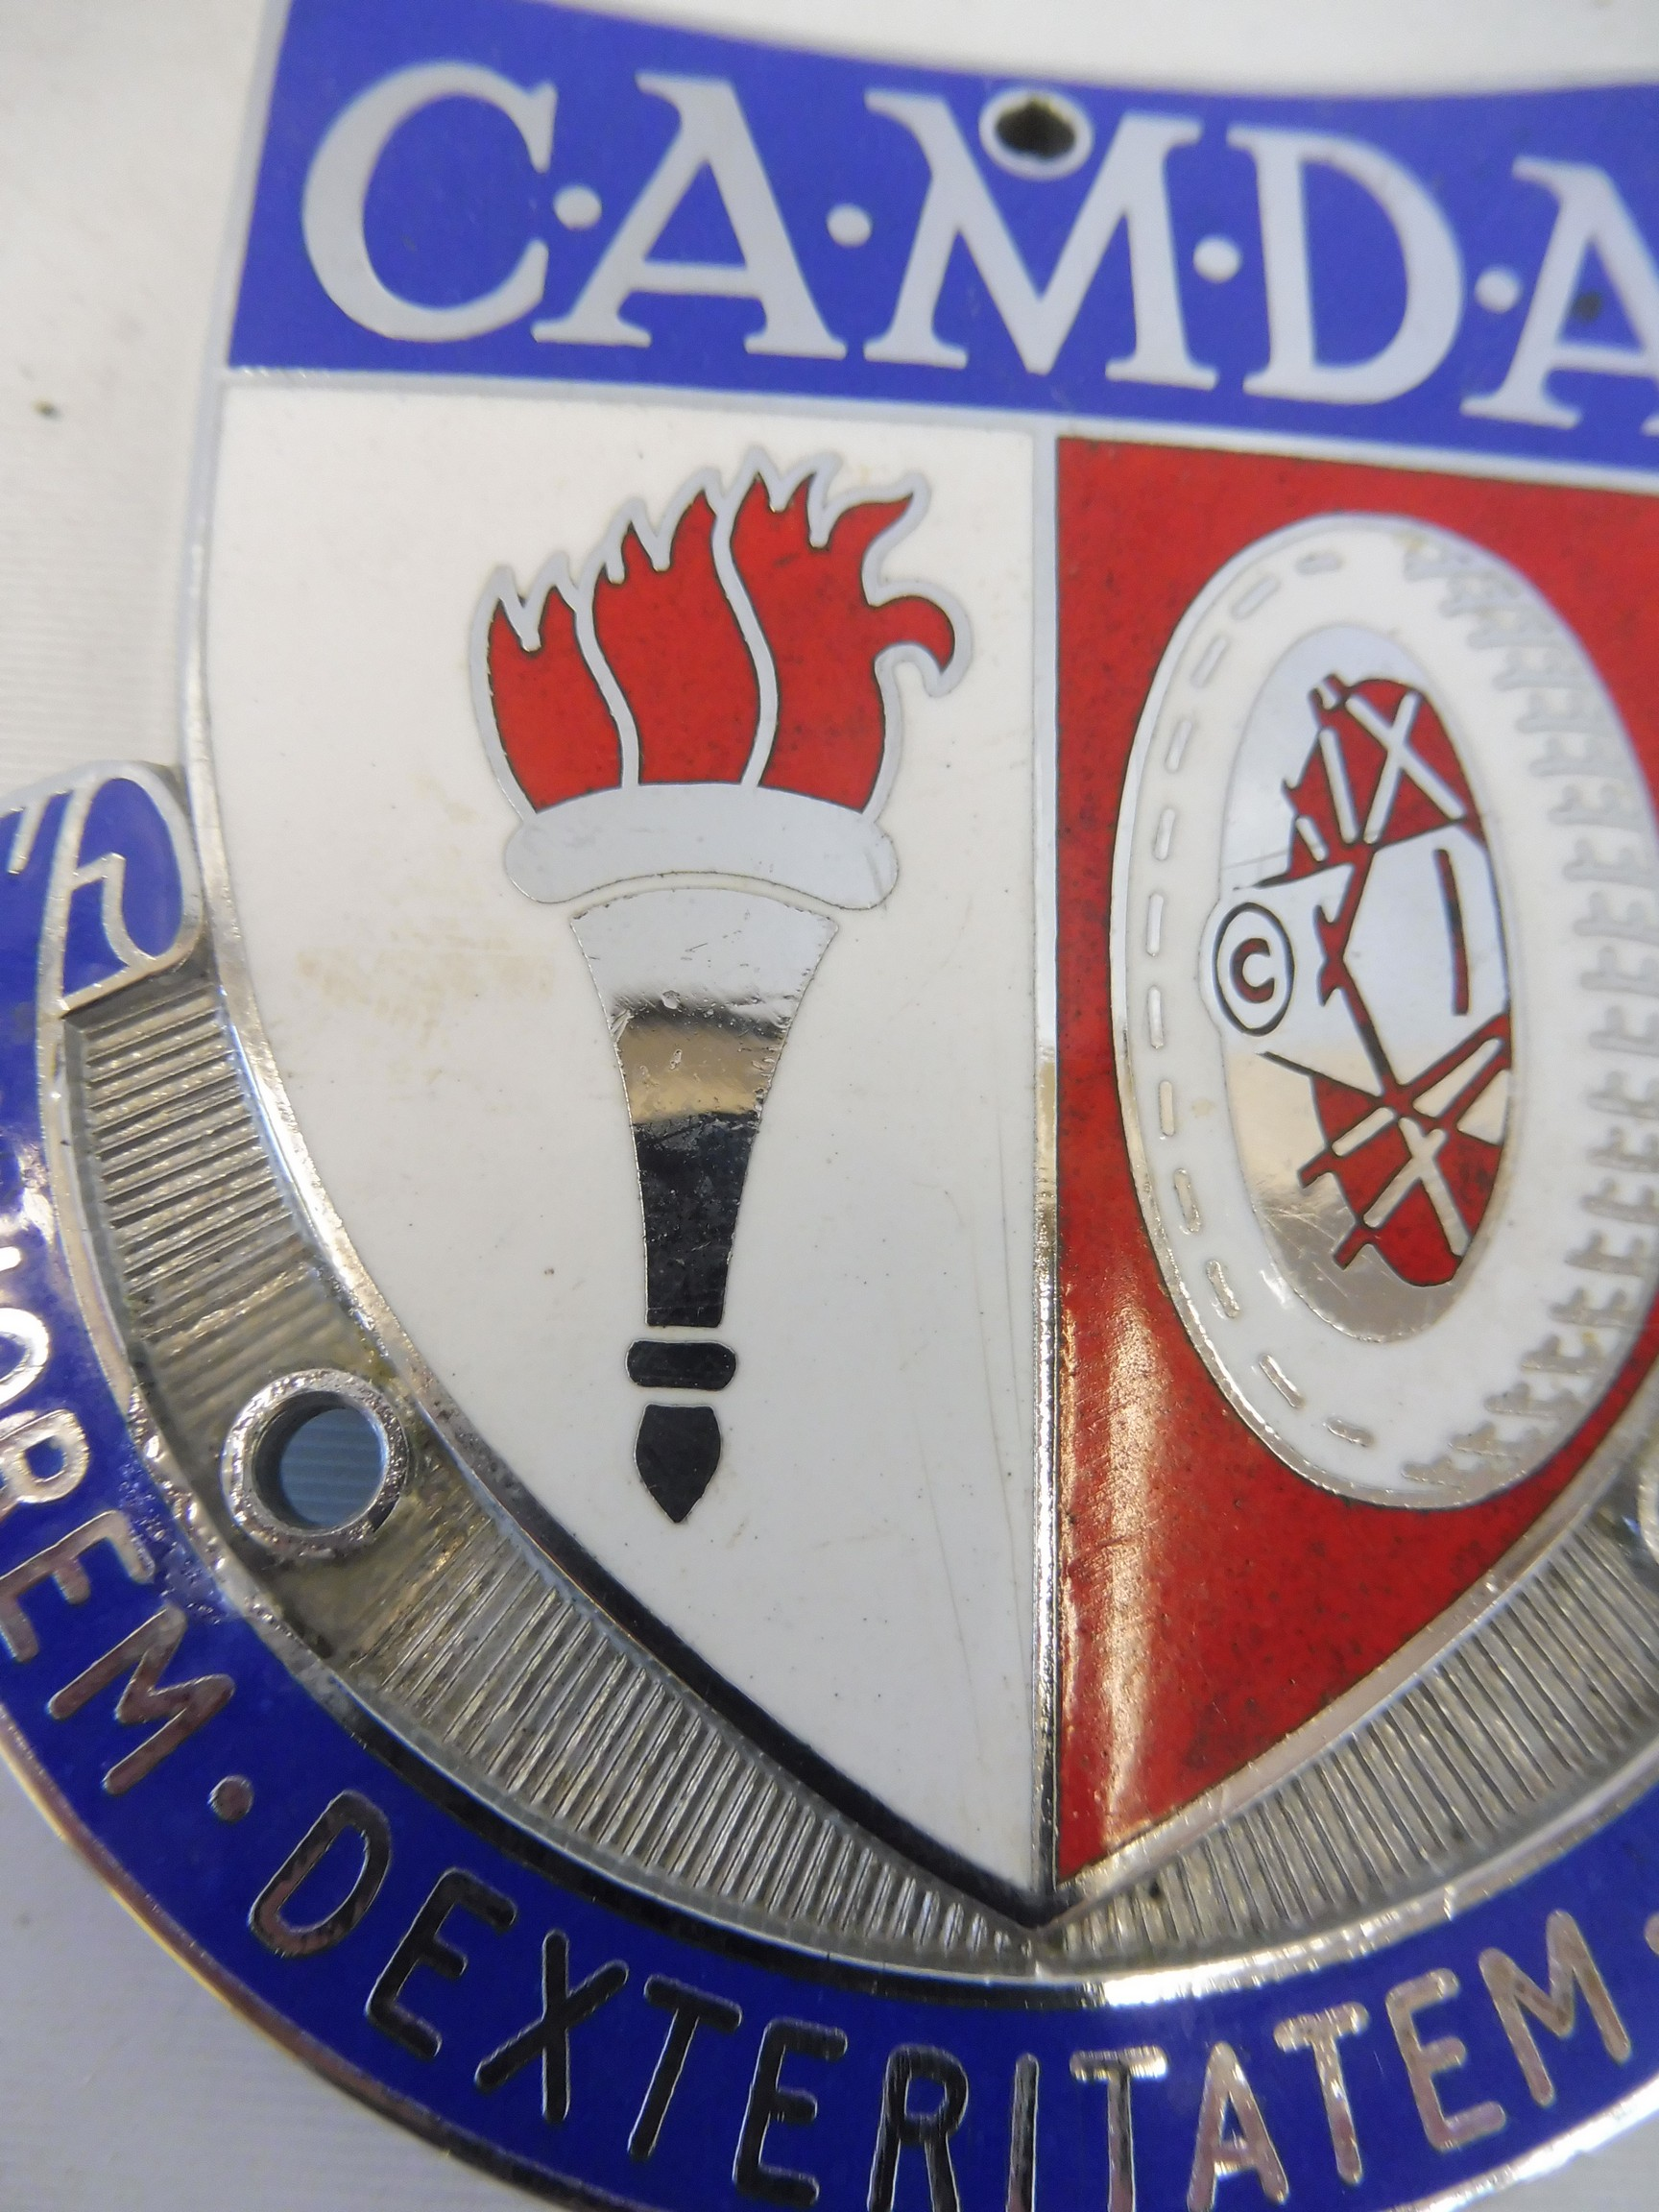 A CAMDA enamel and chrome plated car badge, type 1, 1950s-1960s. - Image 2 of 2